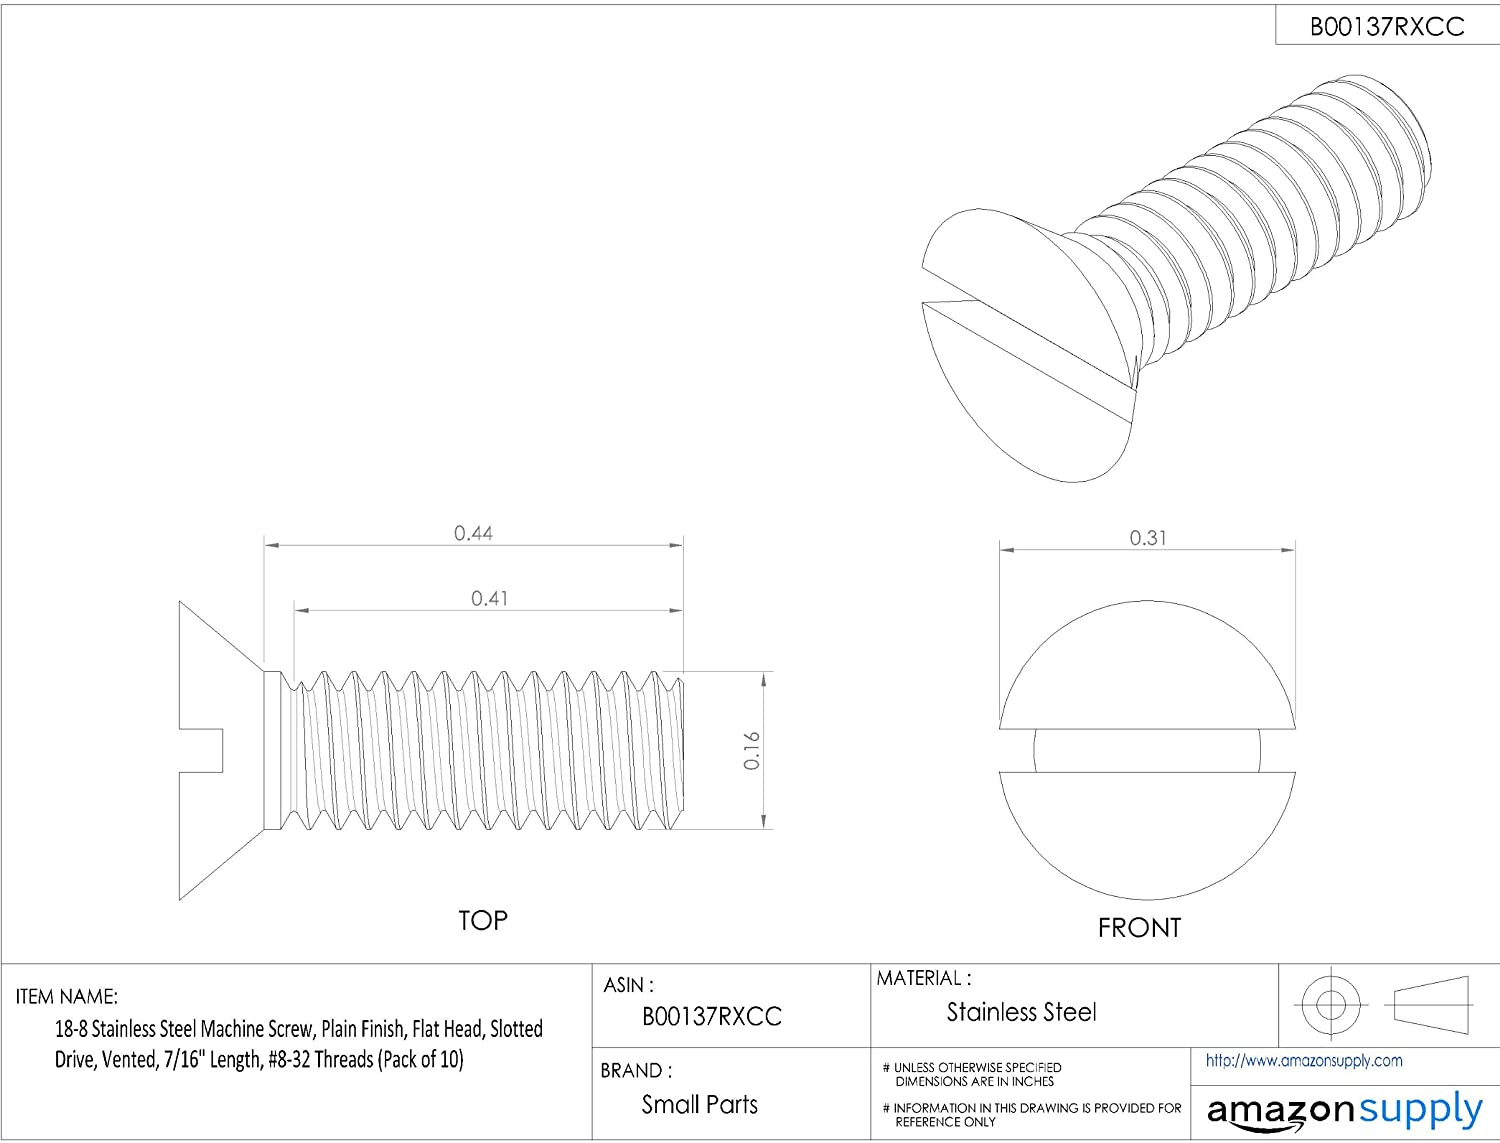 Vented #8-32 Threads Slotted Drive Pack of 10 7//16 Length Plain Finish Flat Head 18-8 Stainless Steel Machine Screw